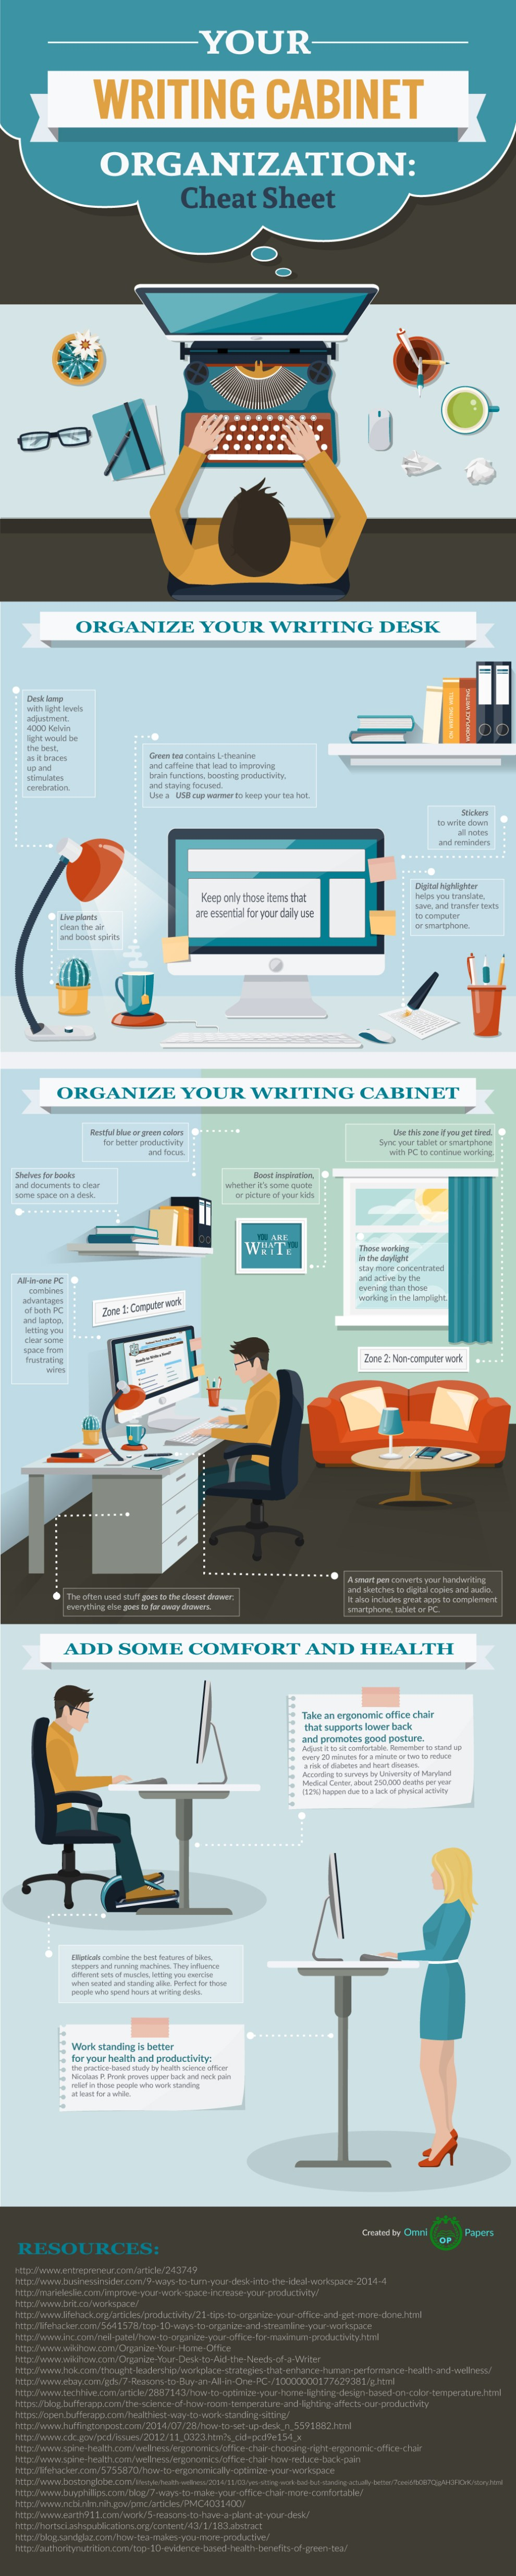 Organize your workspace to boost productivity.